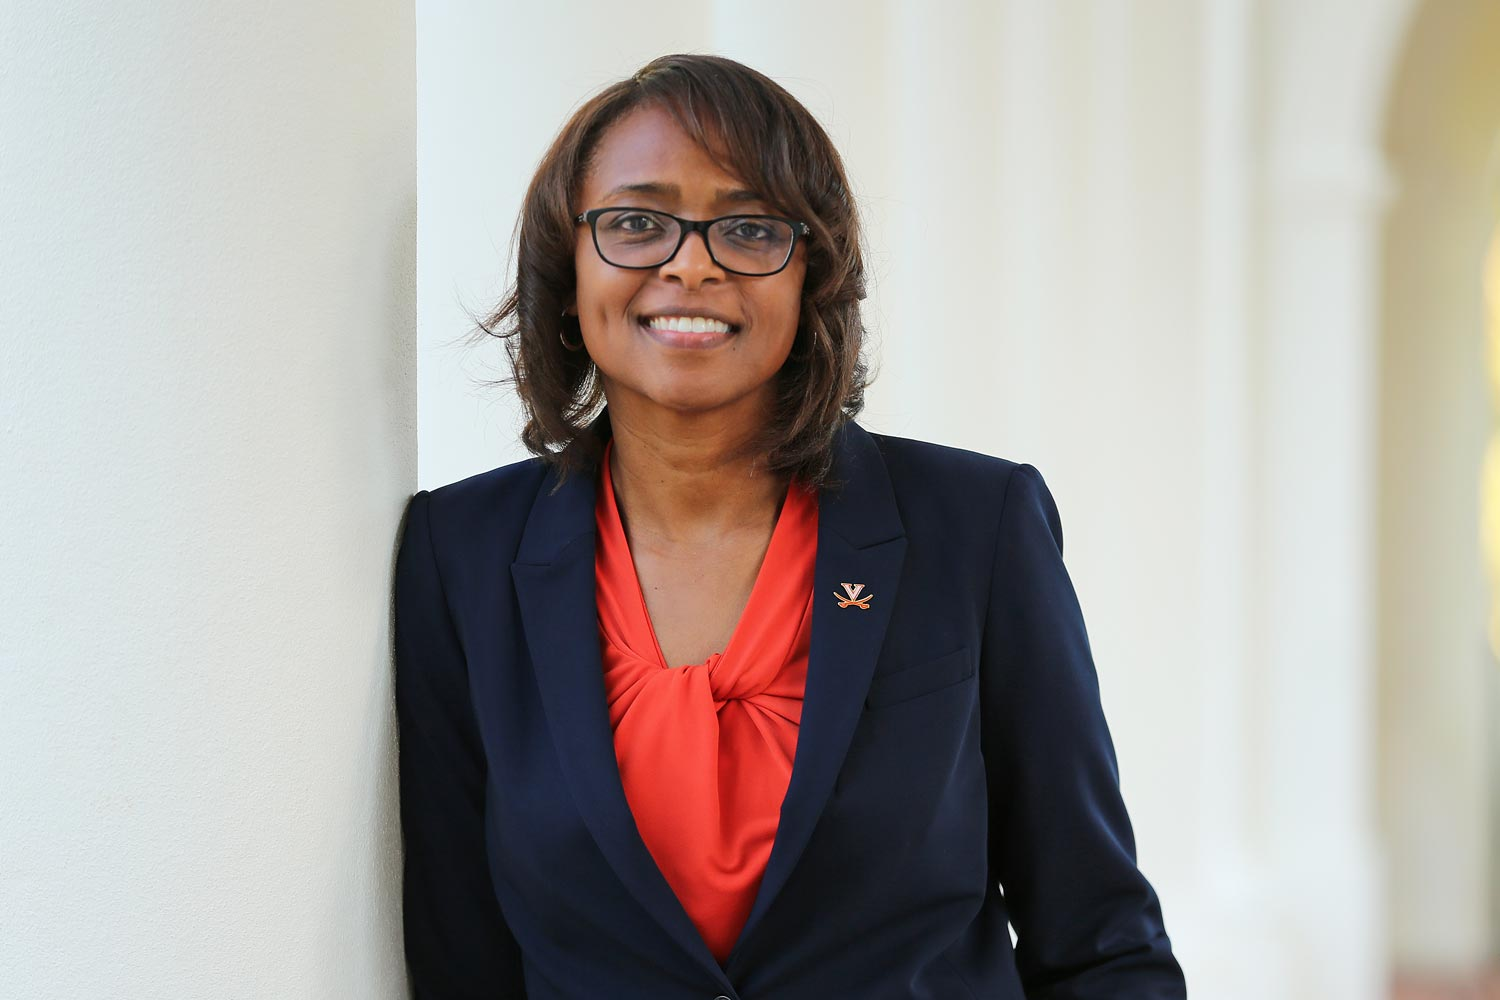 Carla Williams has had a busy first year as UVA's director of athletics, including the launch of a new master plan for Cavalier sports.